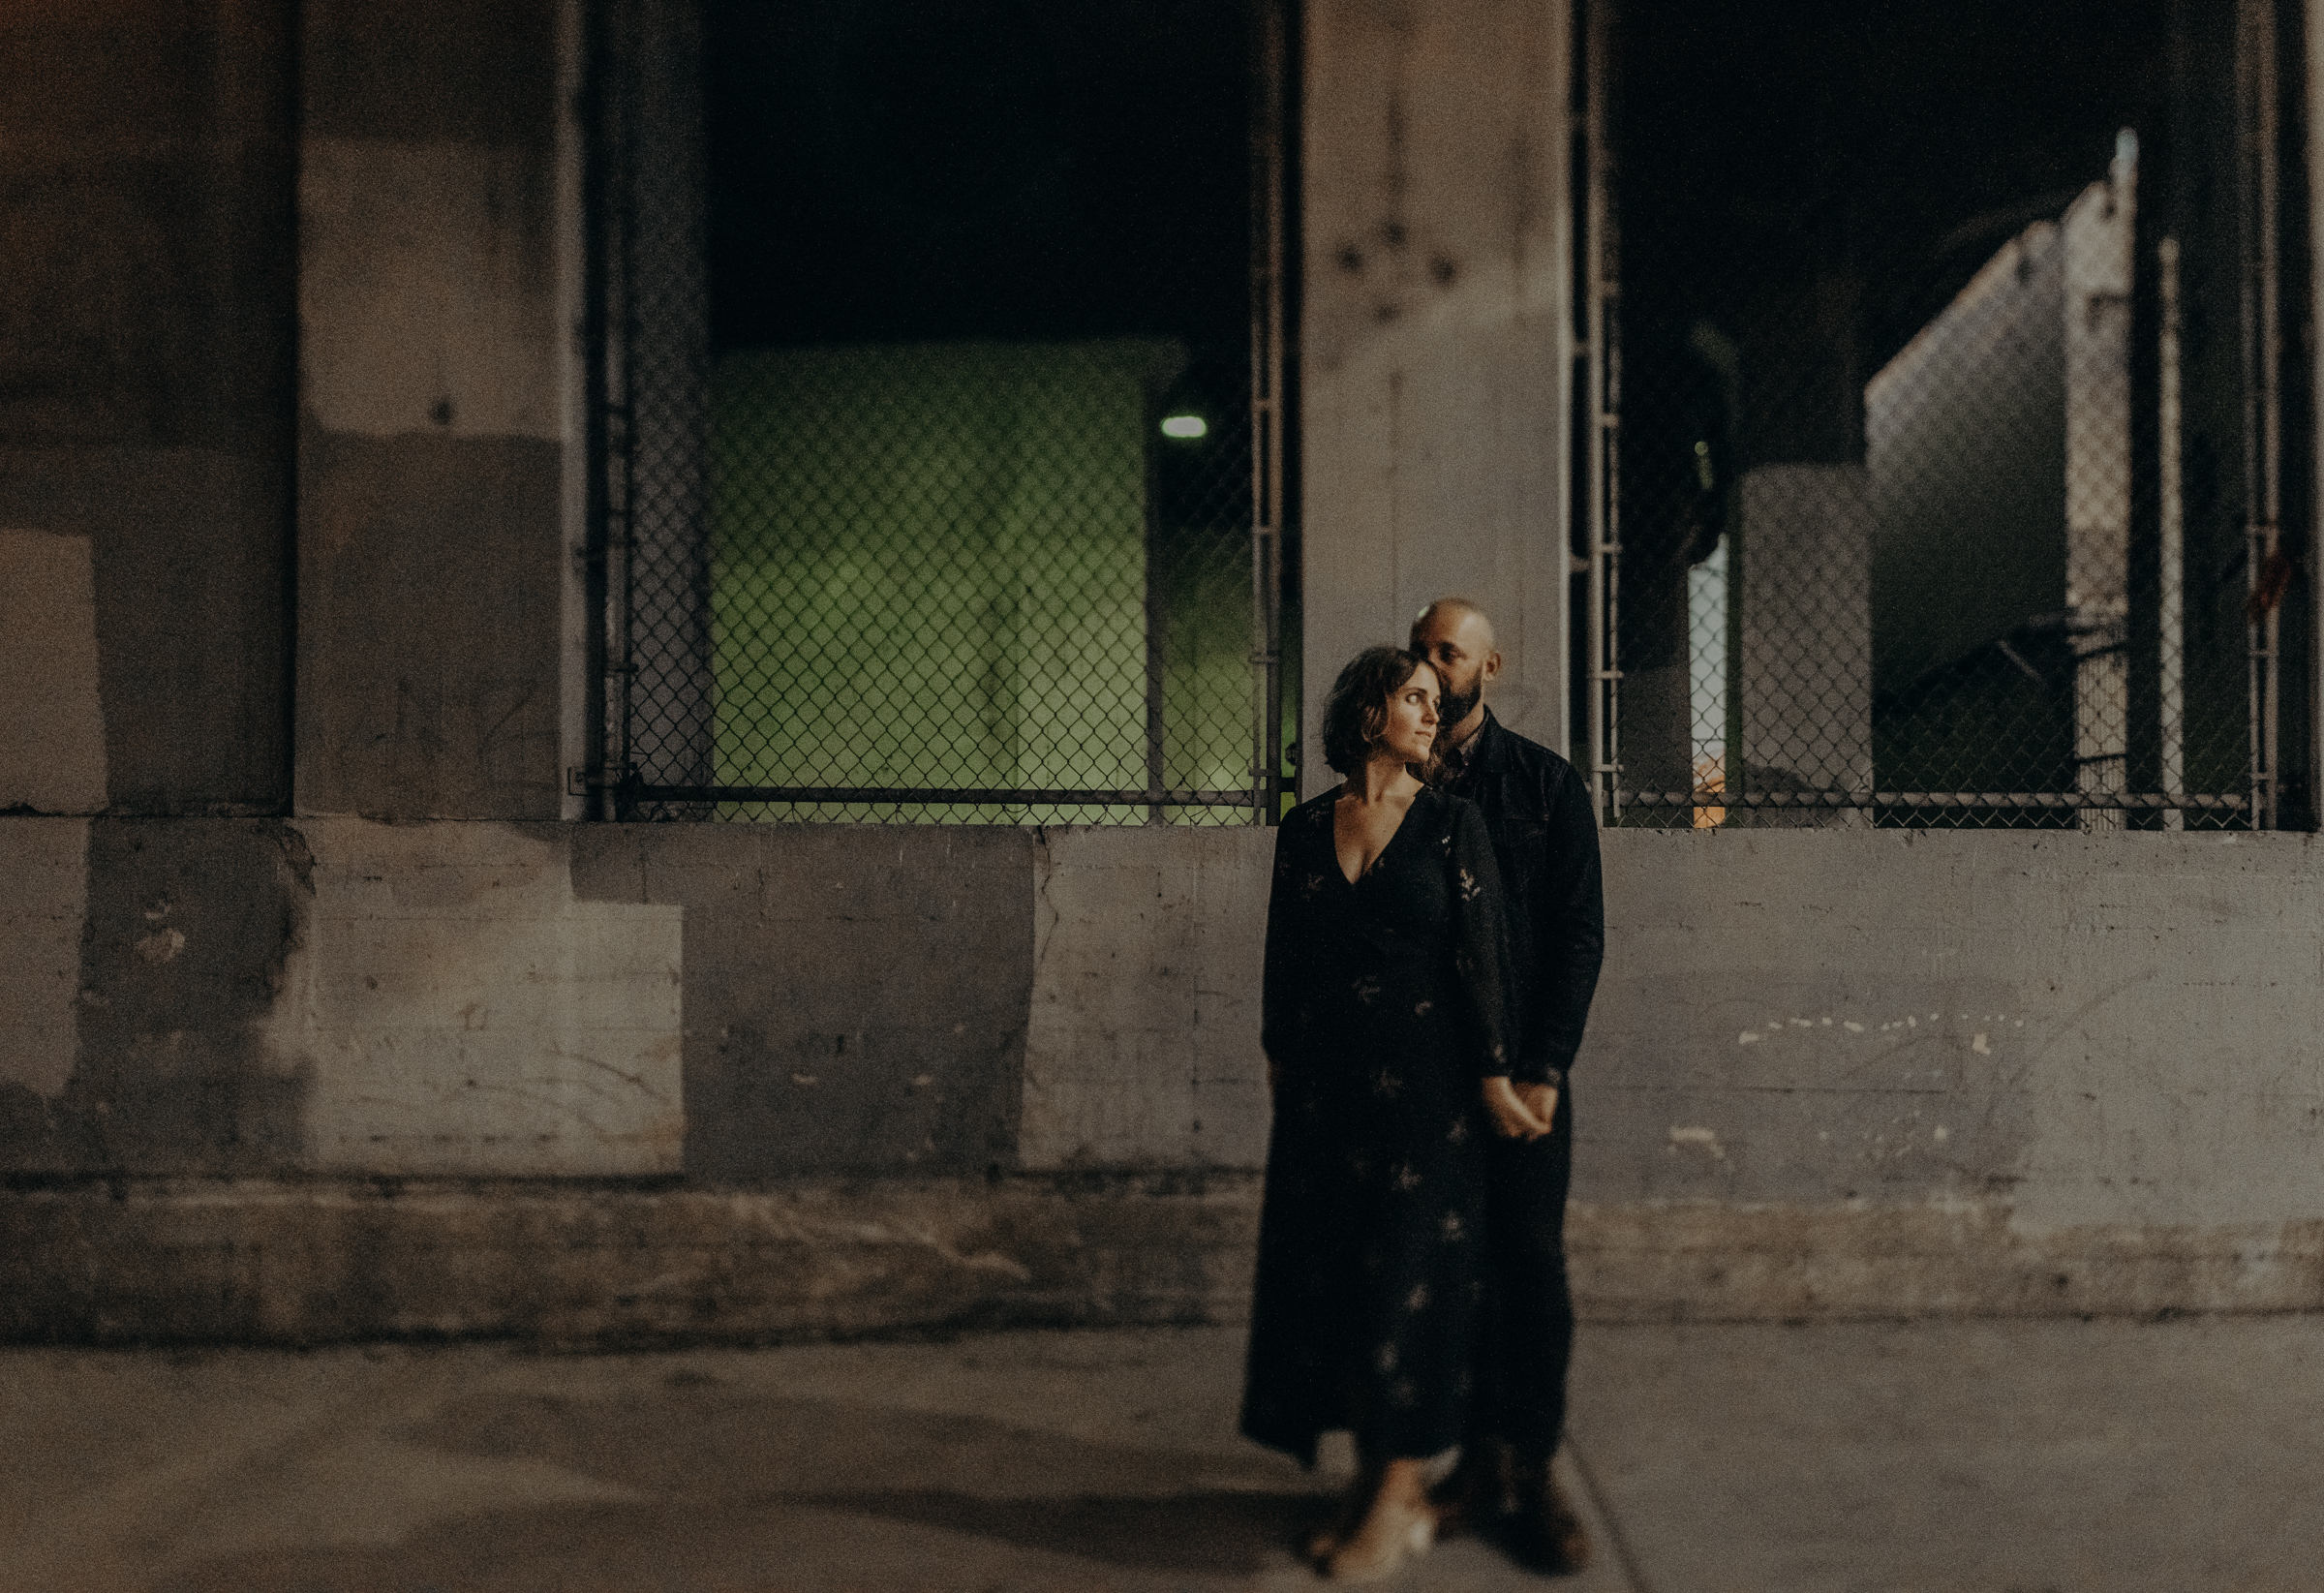 Isaiah + Taylor Photography - Downtown Los Angeles Arts District Engagement53.jpg